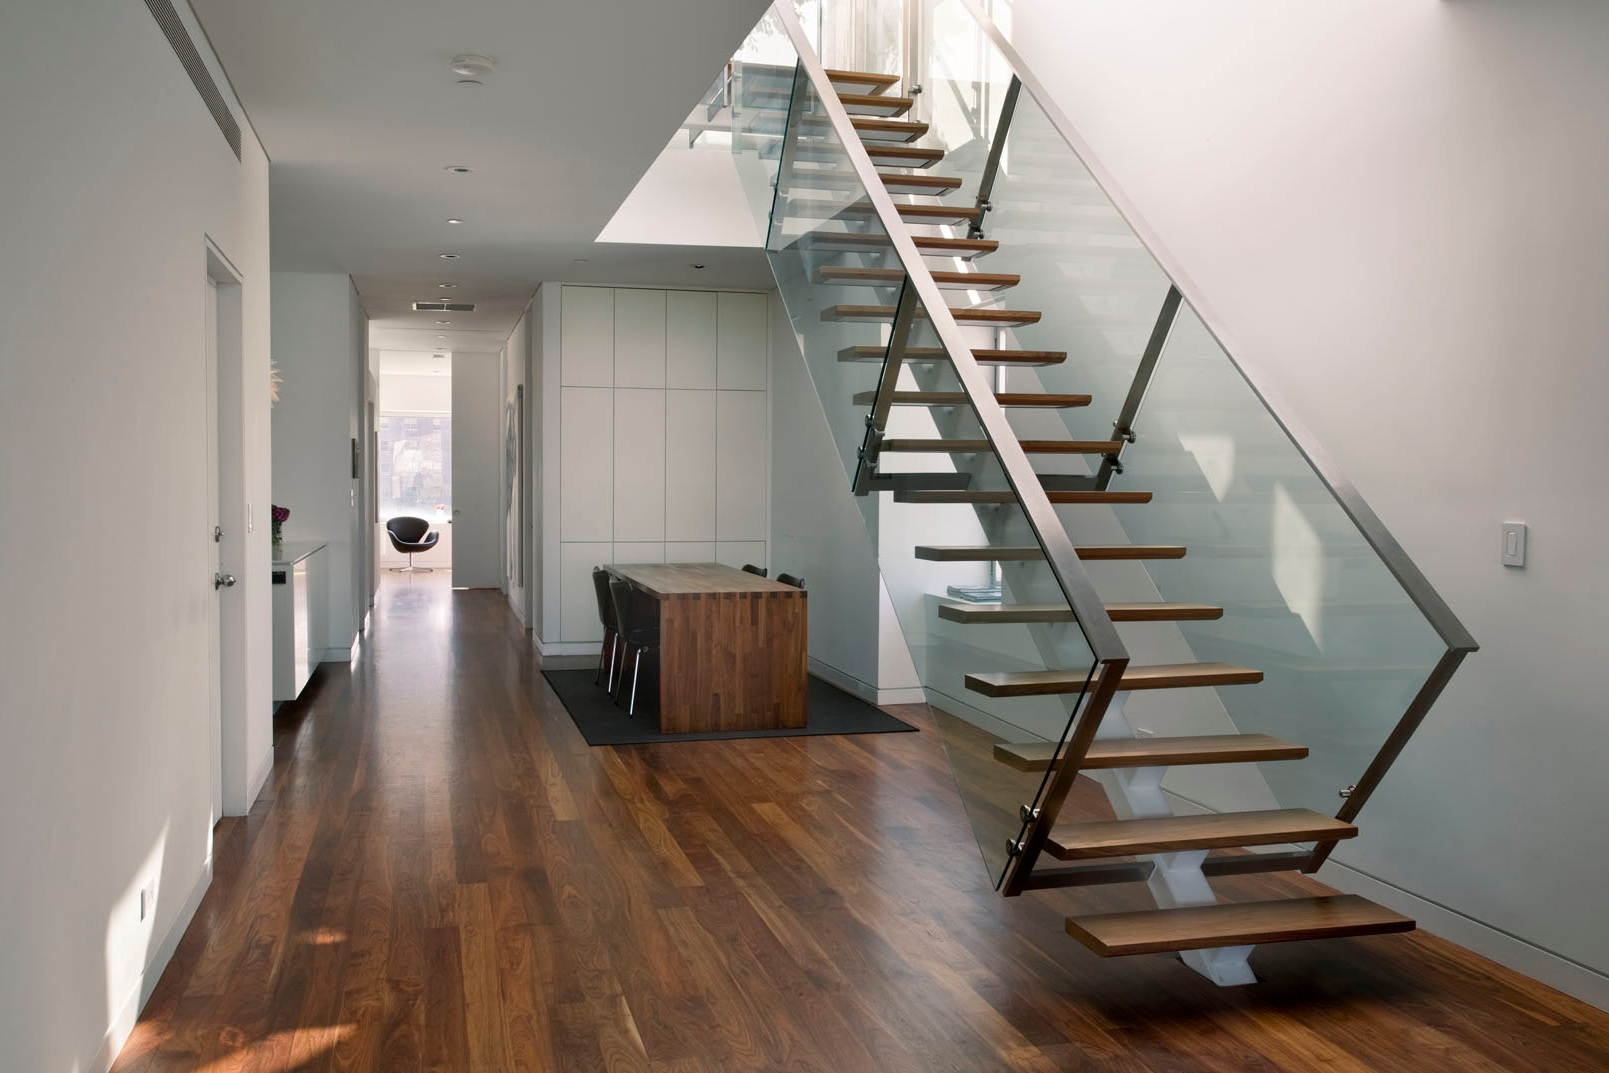 Loci 20: Week 8 - November 16, 2018In Week 8, we look back at one of our favorite residential projects: Loci designed the complete renovation of an East Village penthouse and created a new private roof terrace. Walnut and honed bluestone floors were installed with custom Danish cabinetry and furniture to create a restrained modern aesthetic. Large windows and a skylight above the stainless steel and glass stair allows daylight to illuminate the penthouse interior while creating a link to the terrace above.